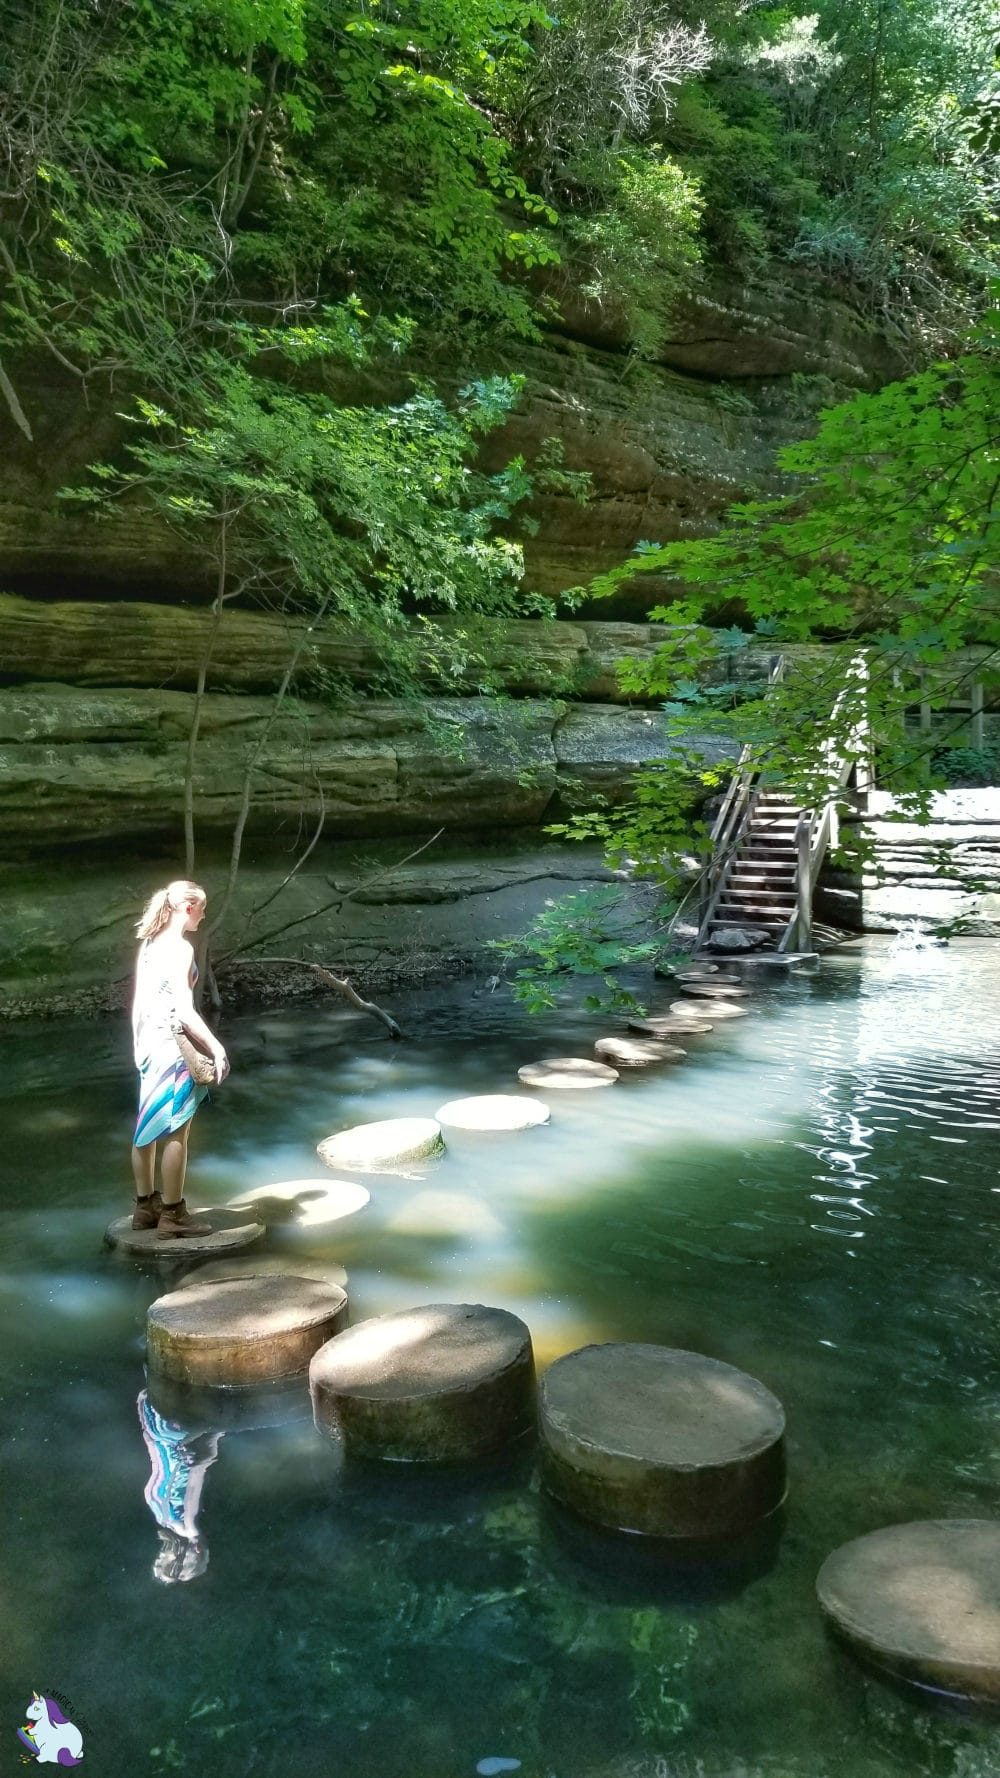 Matthiessen State Park waterfalls - Starved Rock area - A Kia Sorento Road Trip with Wrinkles, Change, Discovery, and Waterfalls #KiaFamily #KiaSorento #KiaPartner